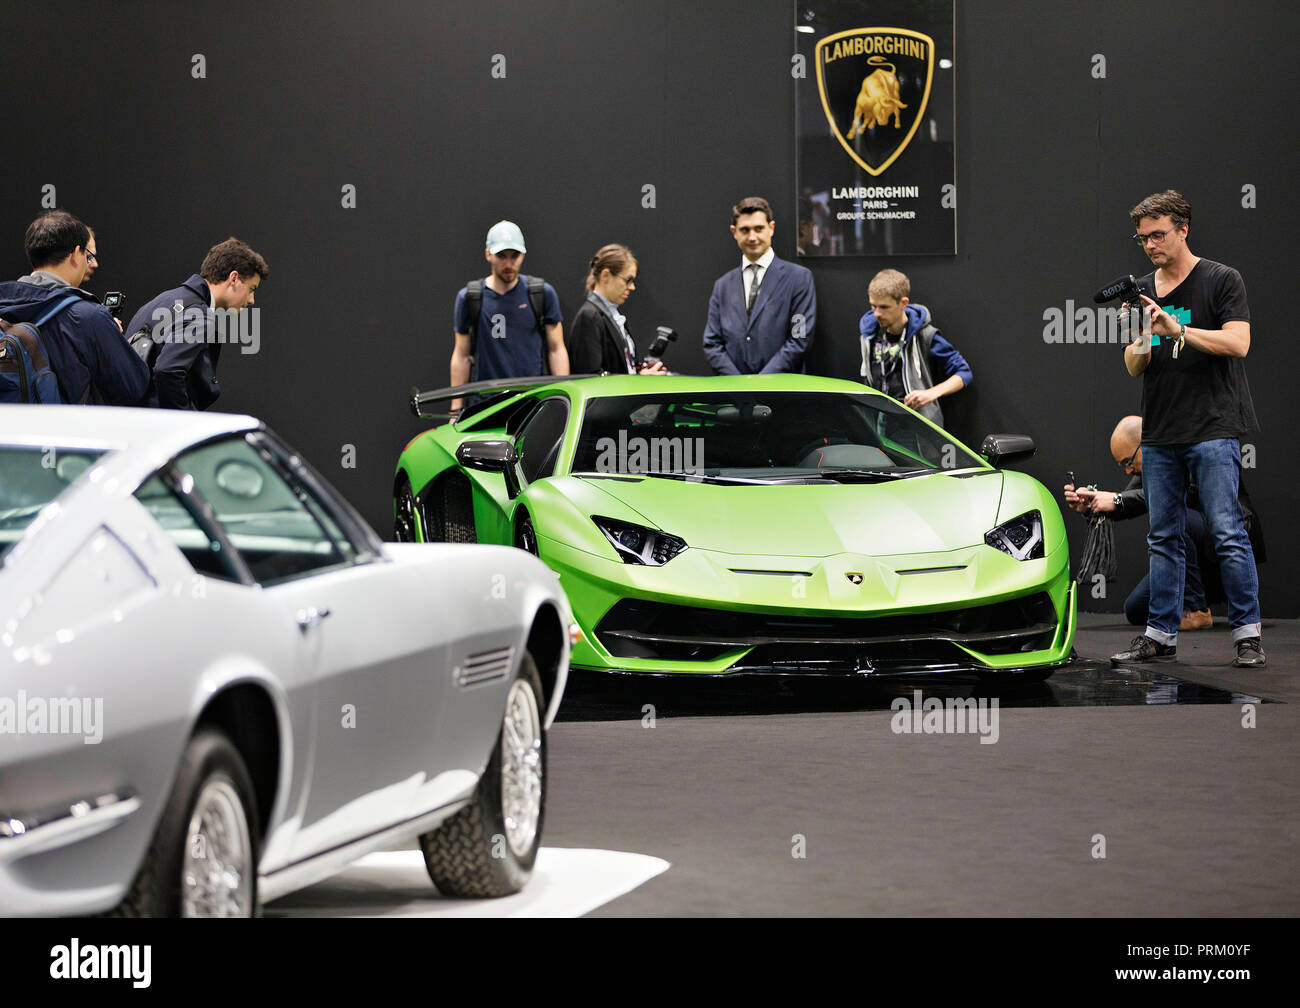 Supersport Lamborghini occupied by journalists during the second press day of the International Motor Show in Paris, France, on Wednesday, October 3rd - Stock Image